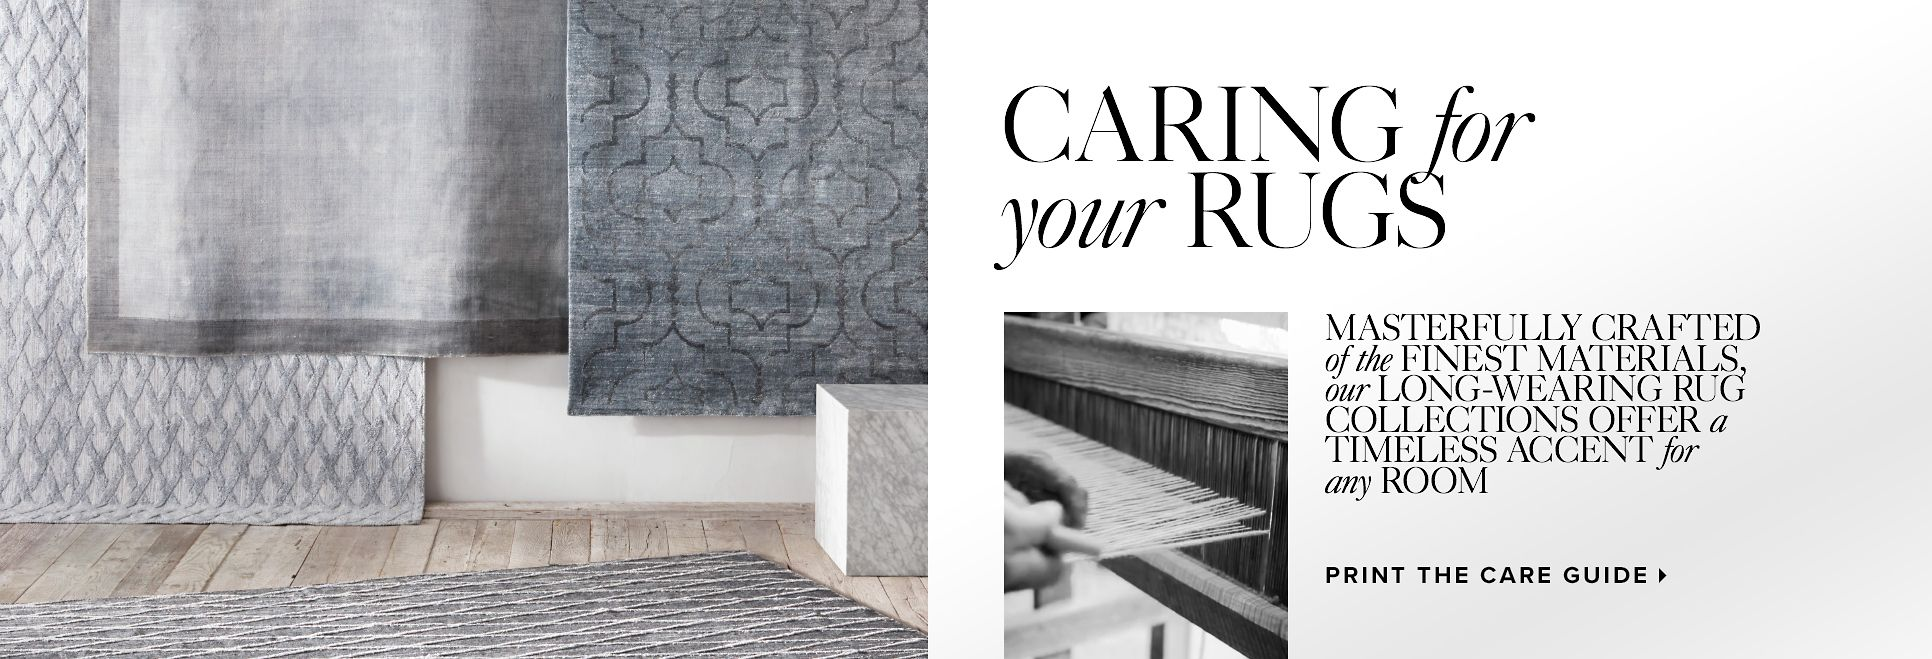 Caring for Your Rugs